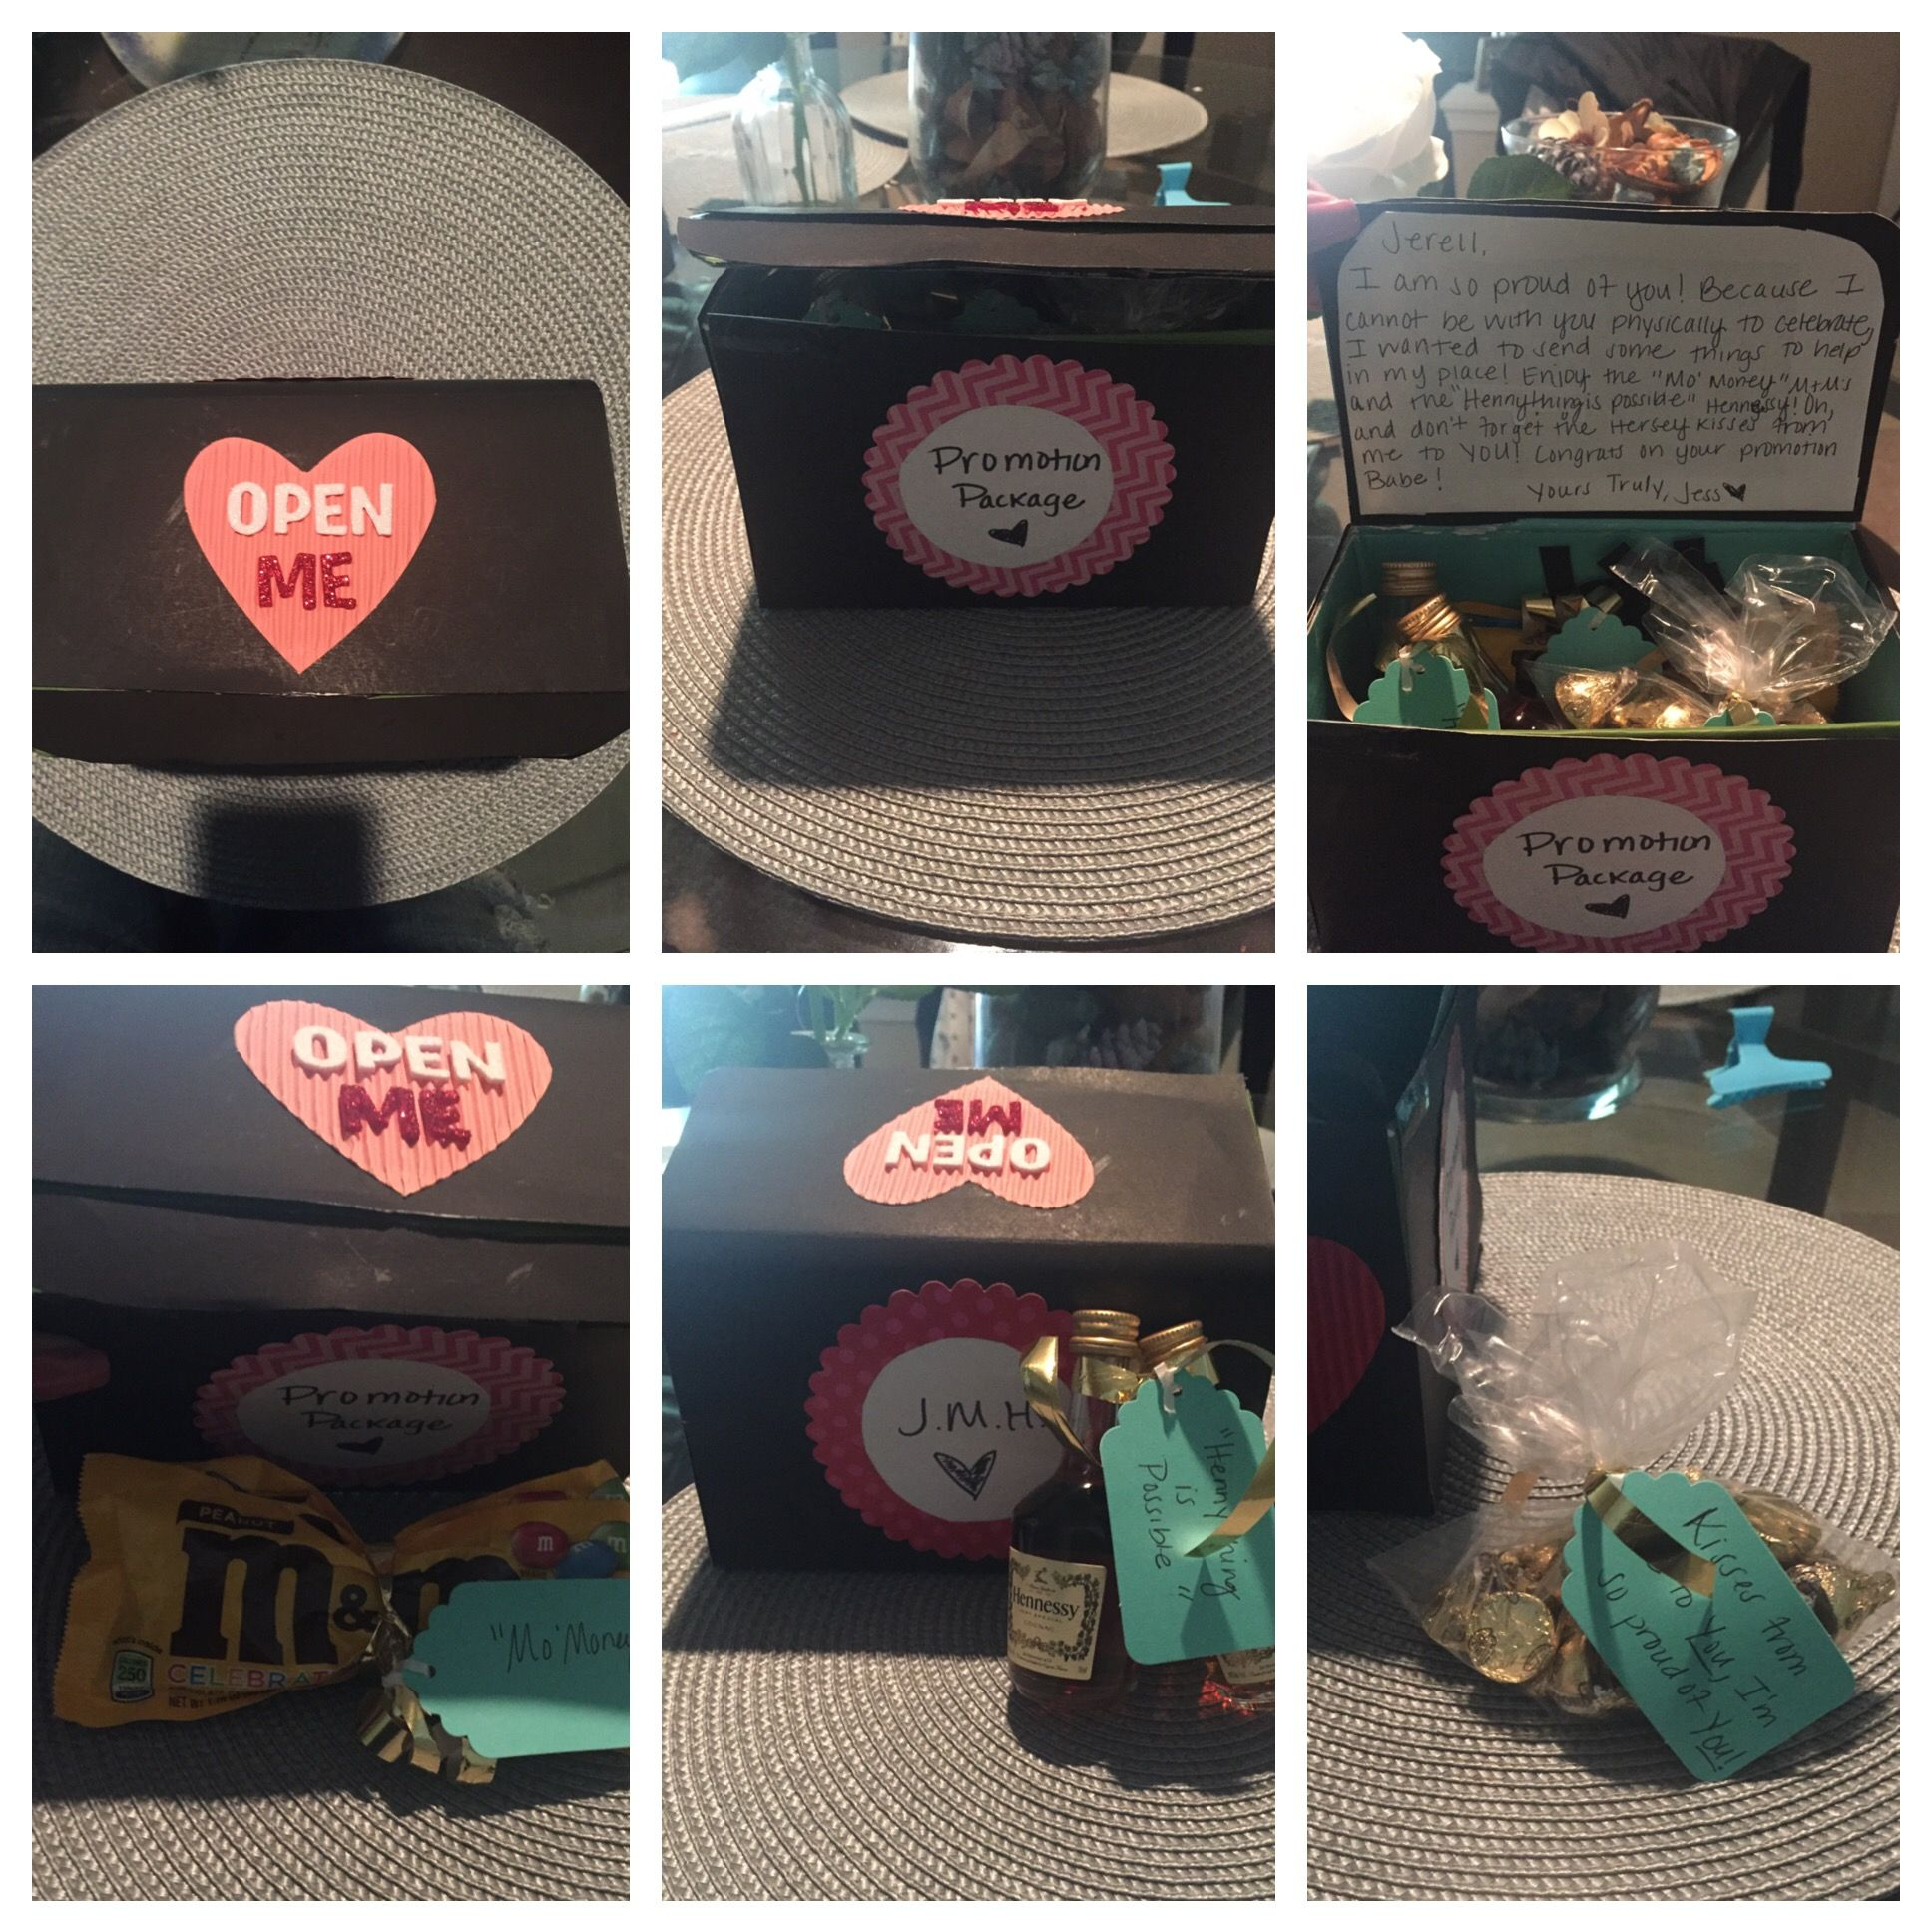 I Made This Promotion Package Gift For My Boyfriend Who